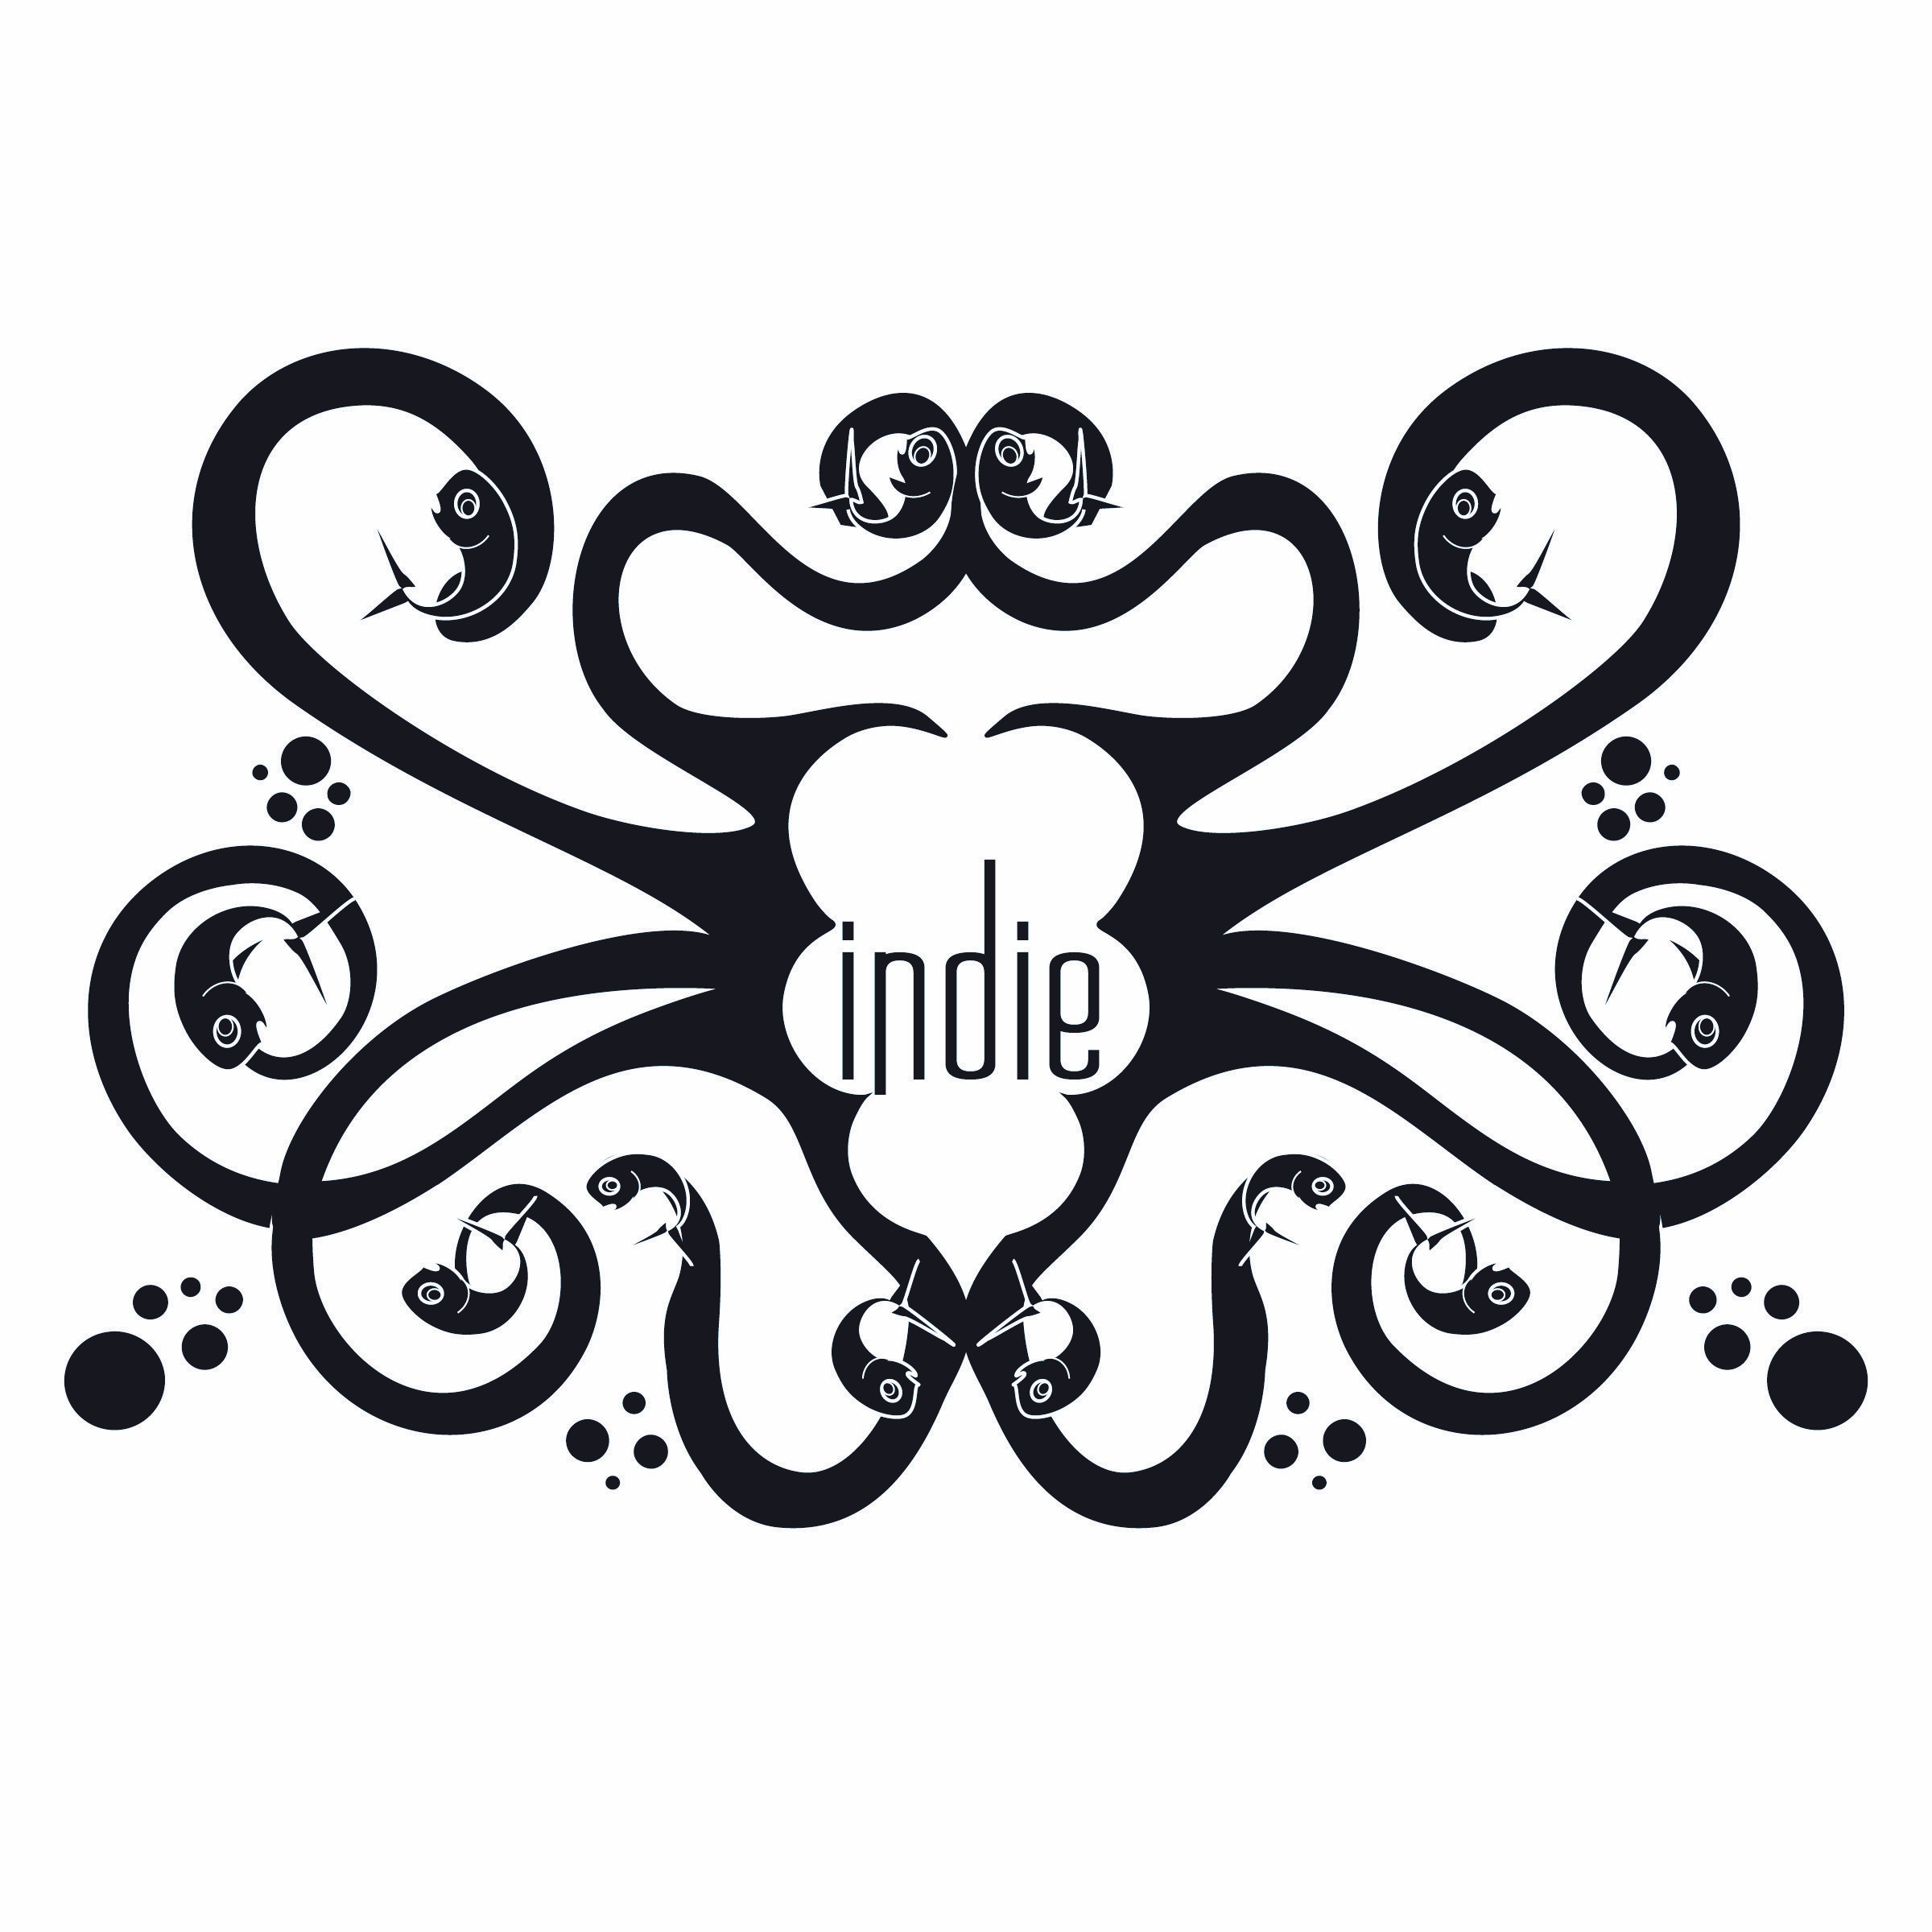 www.indiecafe.us